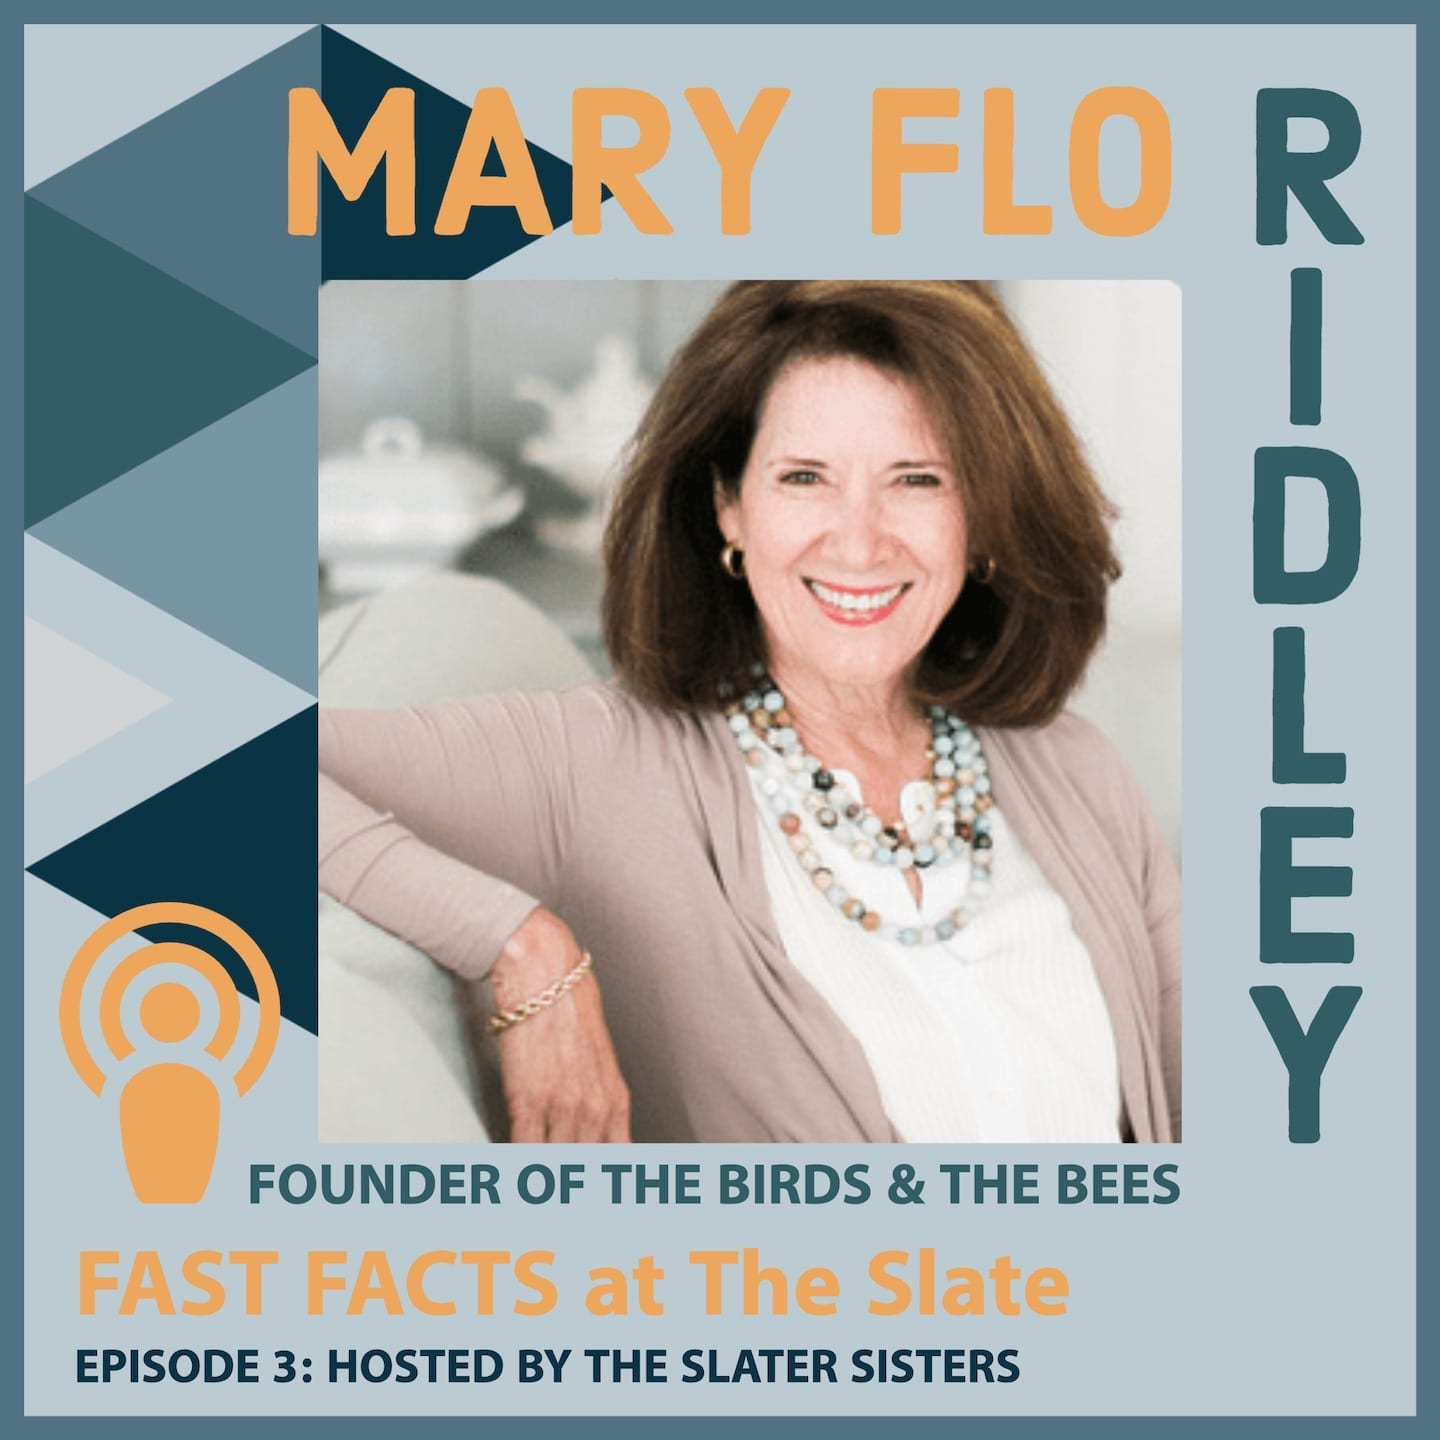 Episode 3: Mary Flo Ridley